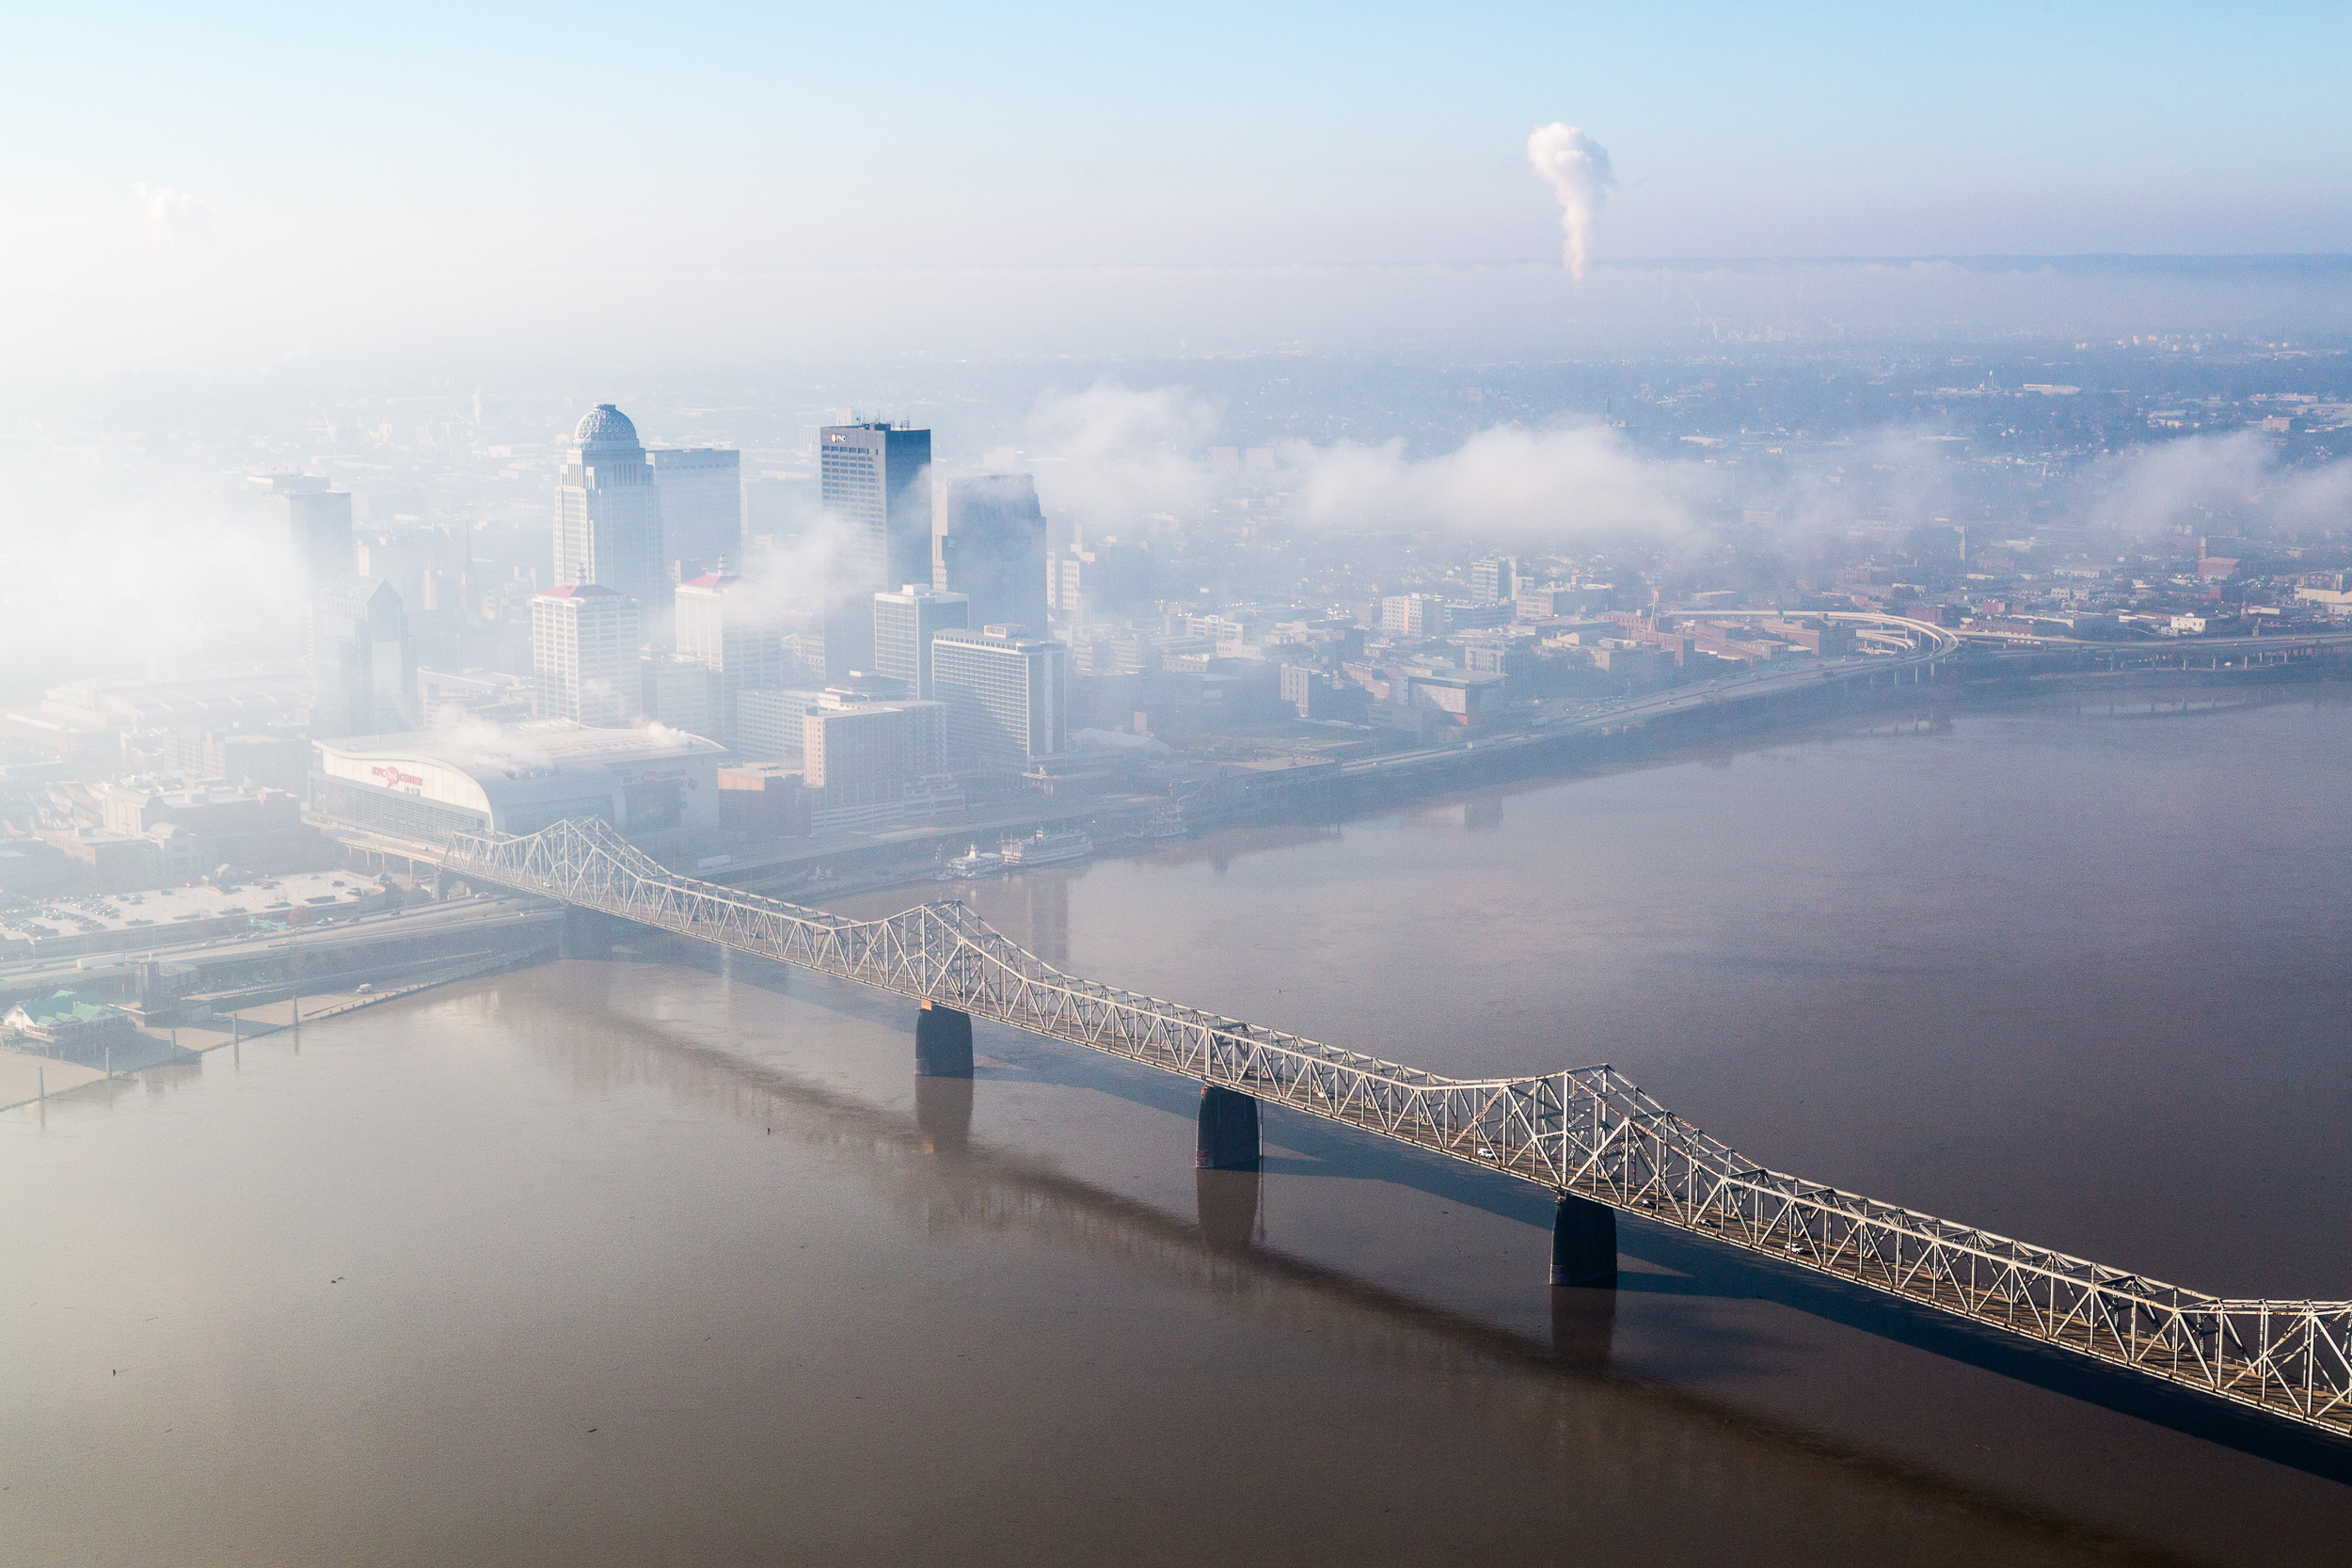 Low morning clouds and fog over Louisville, Kentucky and the Ohio River.